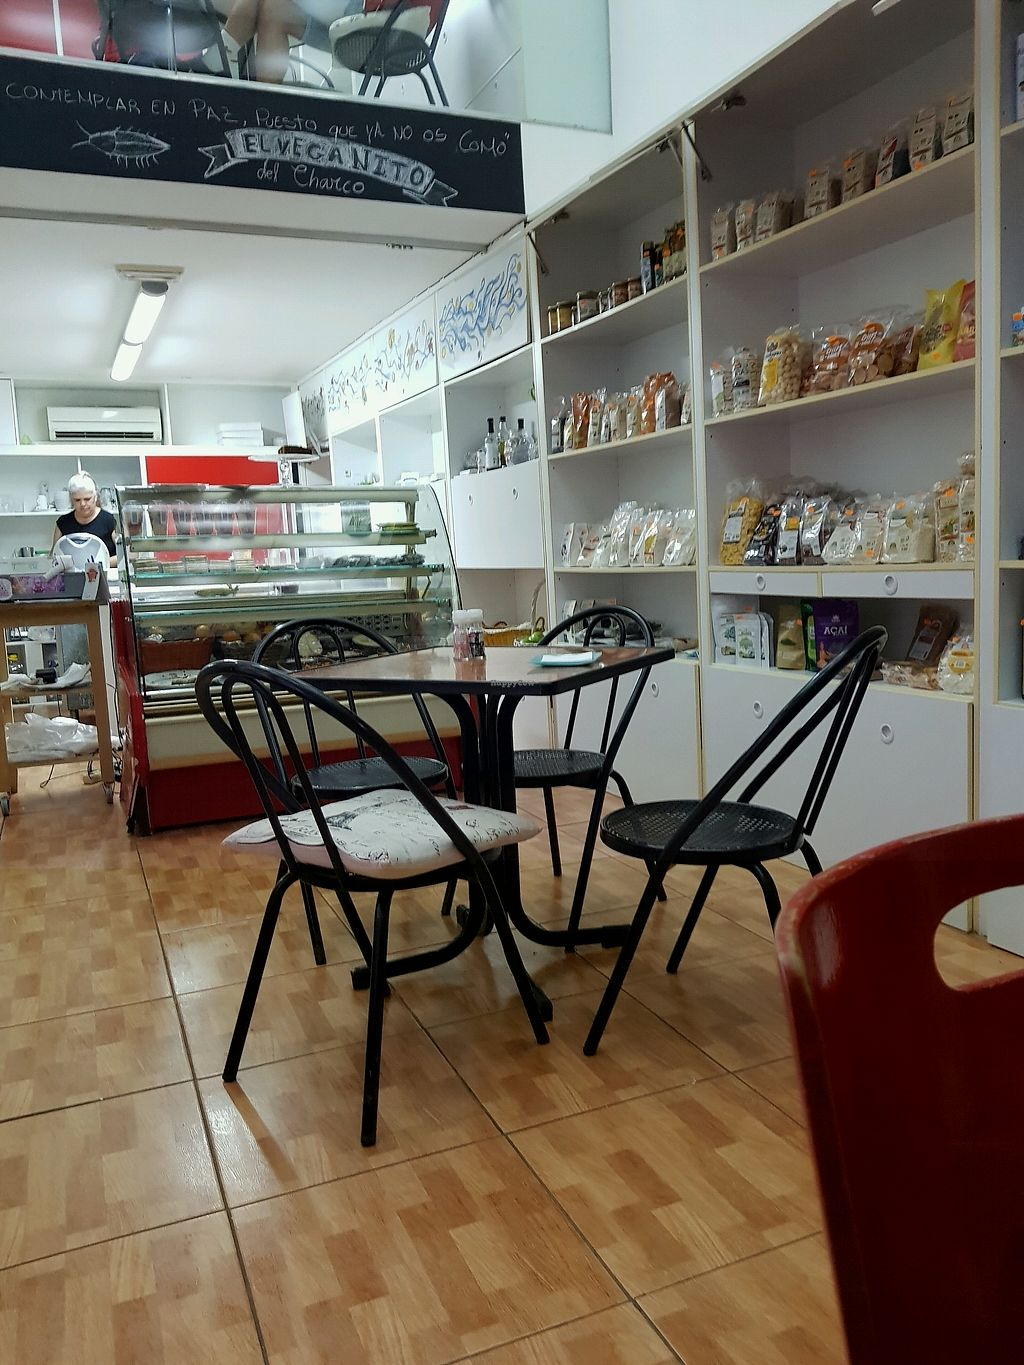 """Photo of El Veganito del Charco  by <a href=""""/members/profile/Disappeared"""">Disappeared</a> <br/>inside the restaurant <br/> November 17, 2017  - <a href='/contact/abuse/image/66328/326532'>Report</a>"""